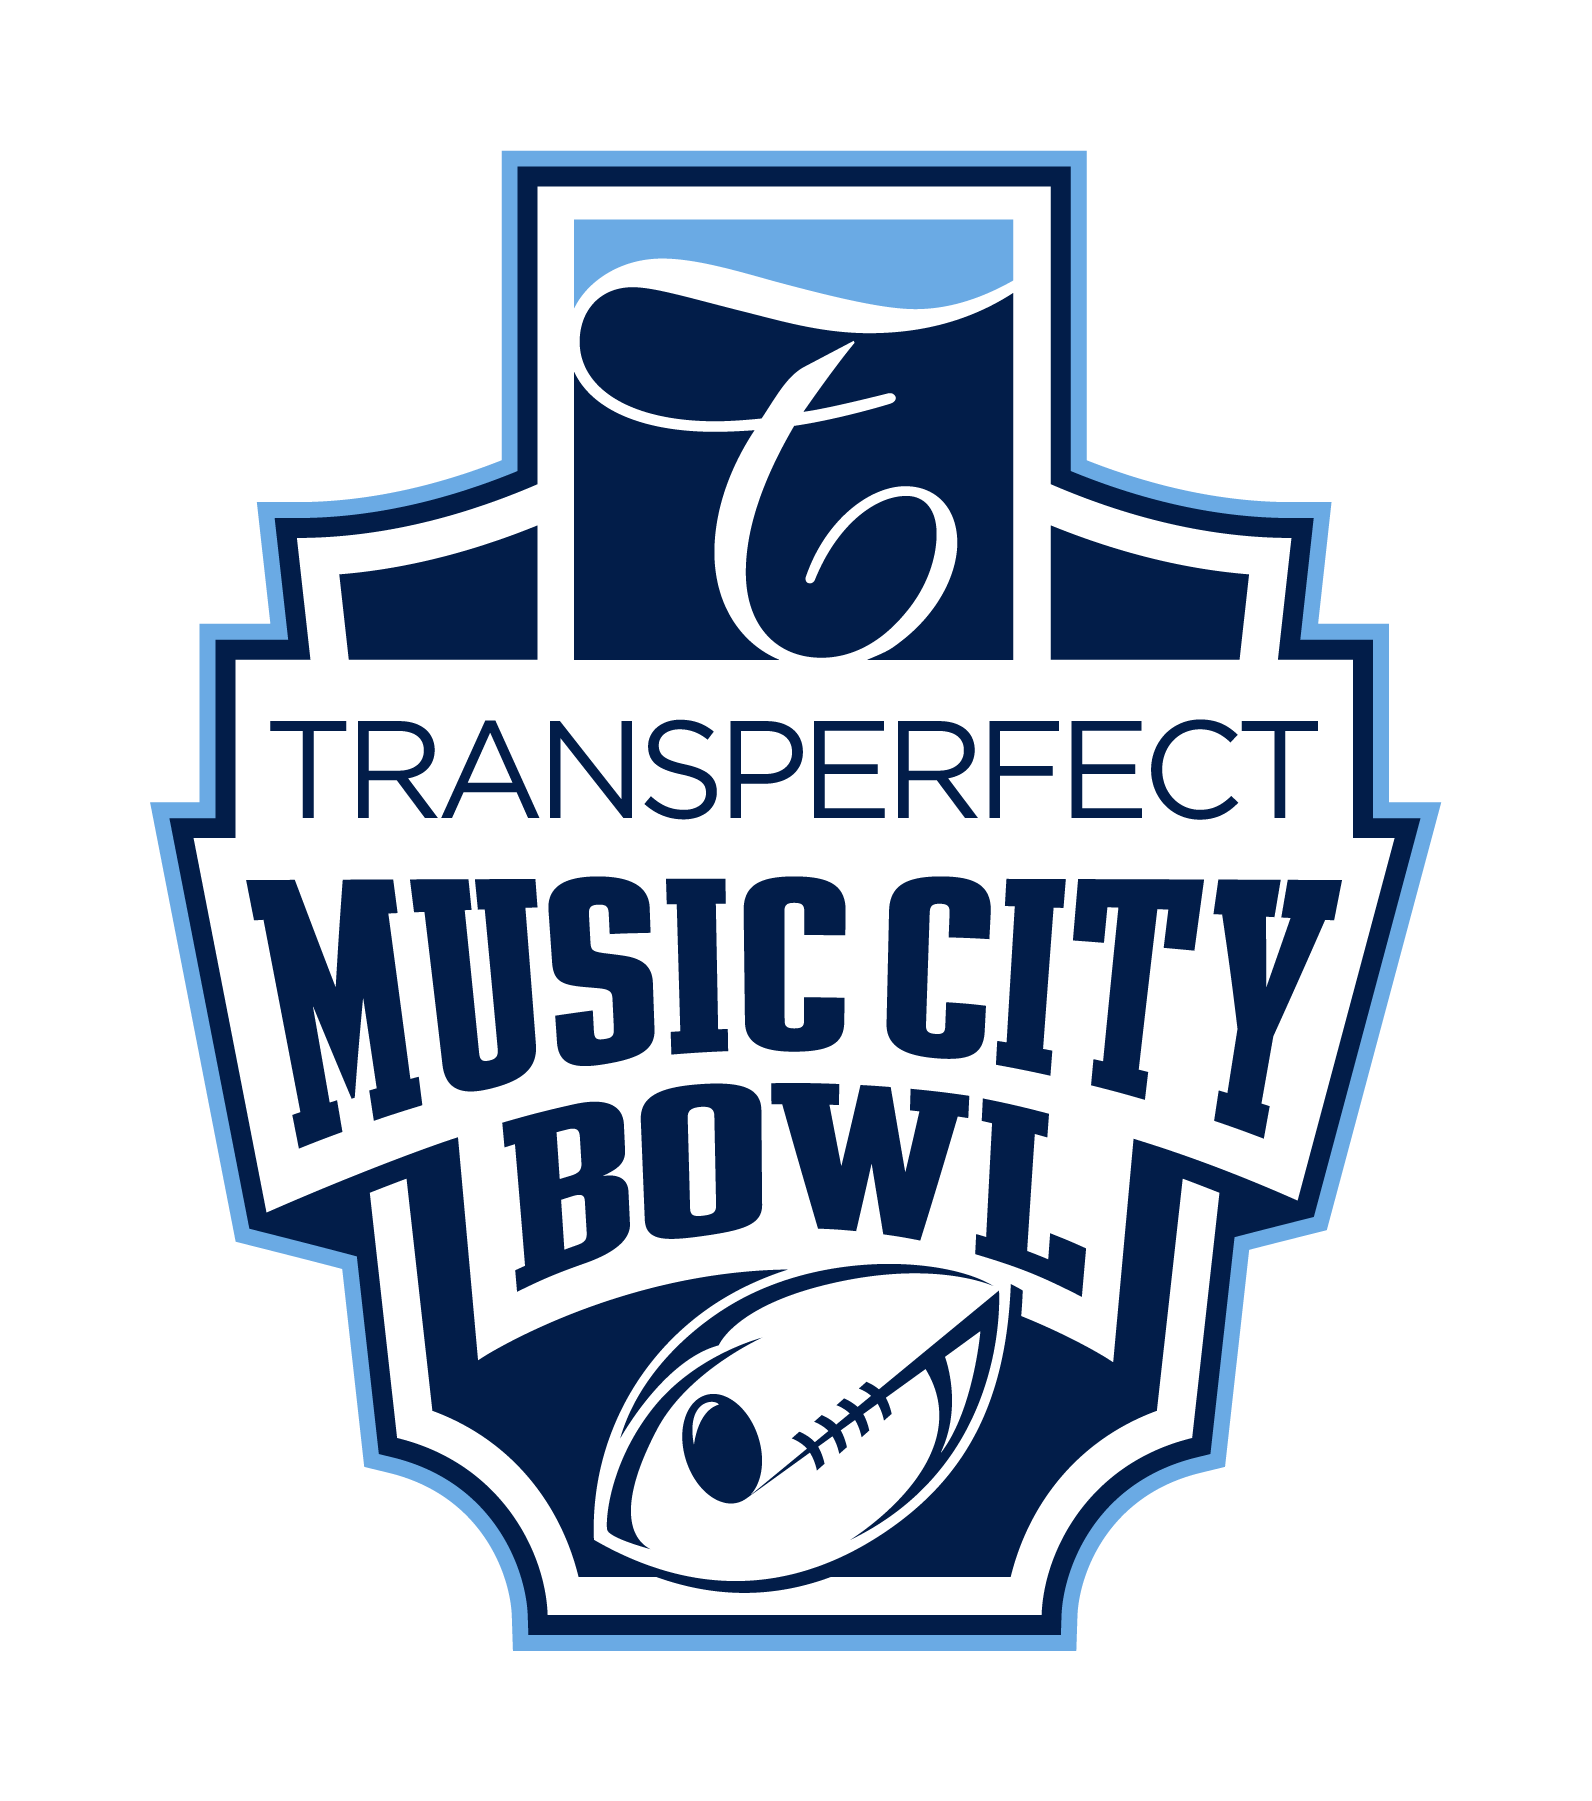 TransPerfect Music City Bowl logo